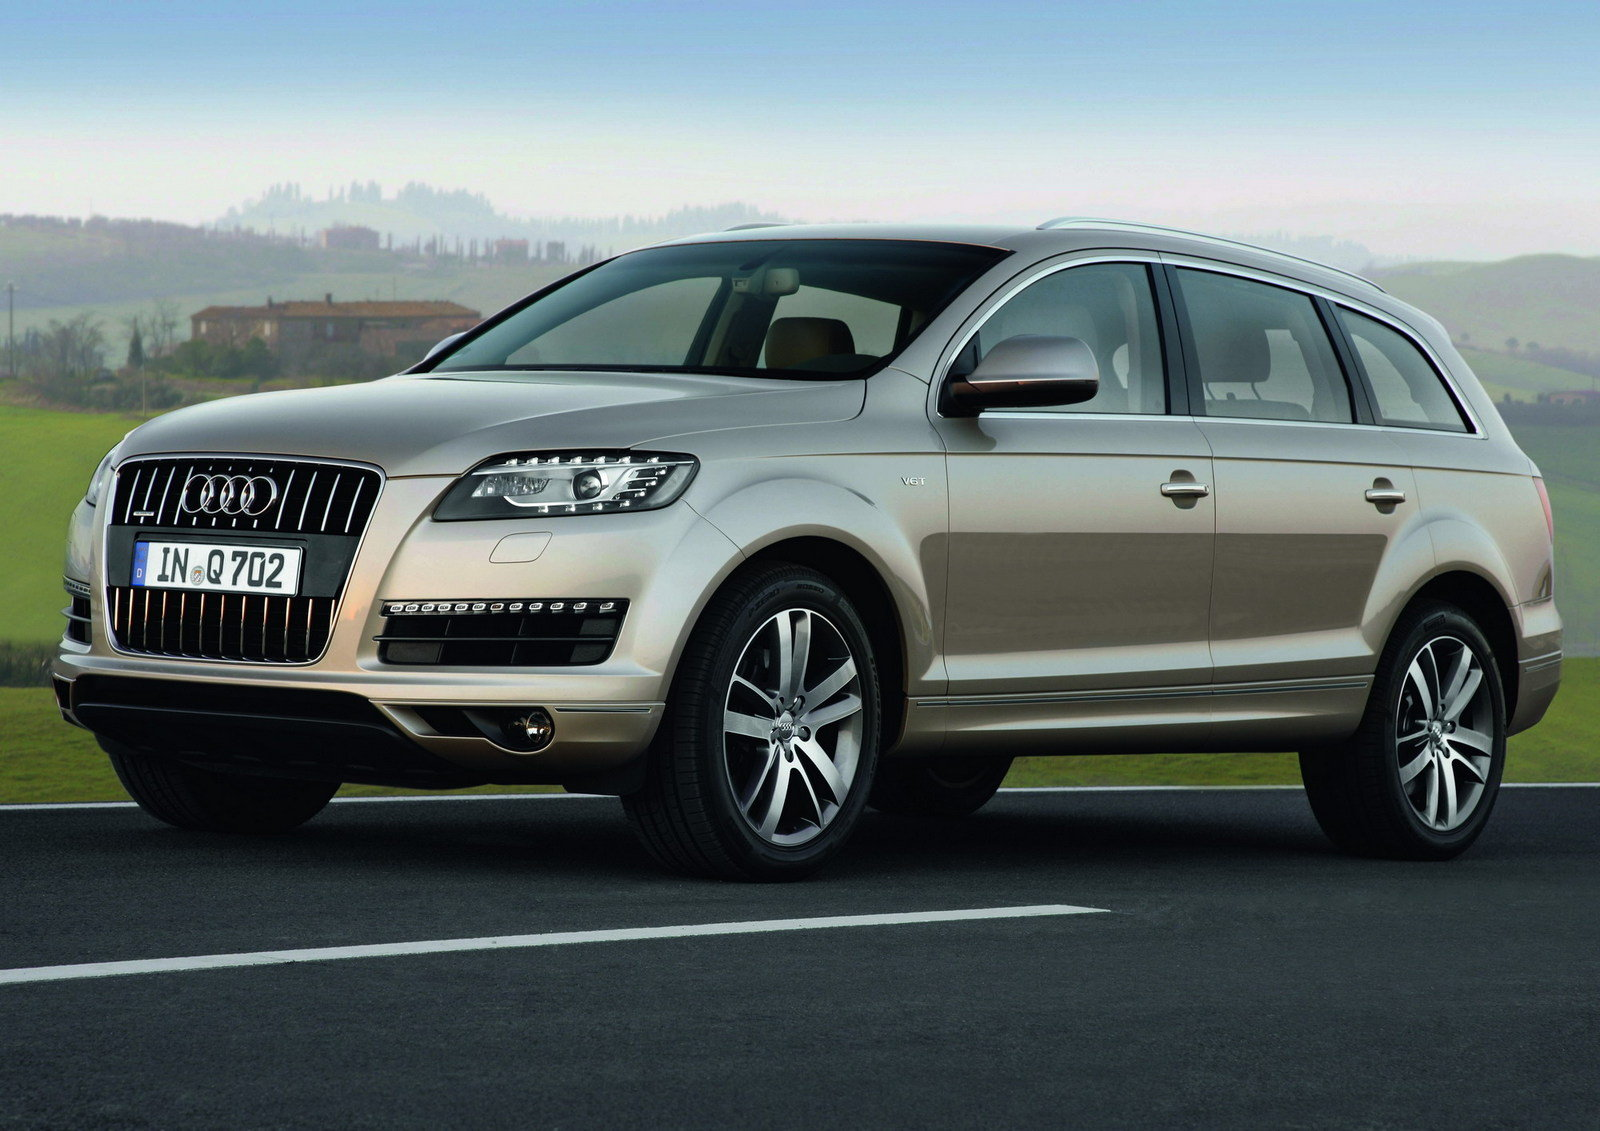 2011 audi q7 3 0 tdi quattro review top speed. Black Bedroom Furniture Sets. Home Design Ideas